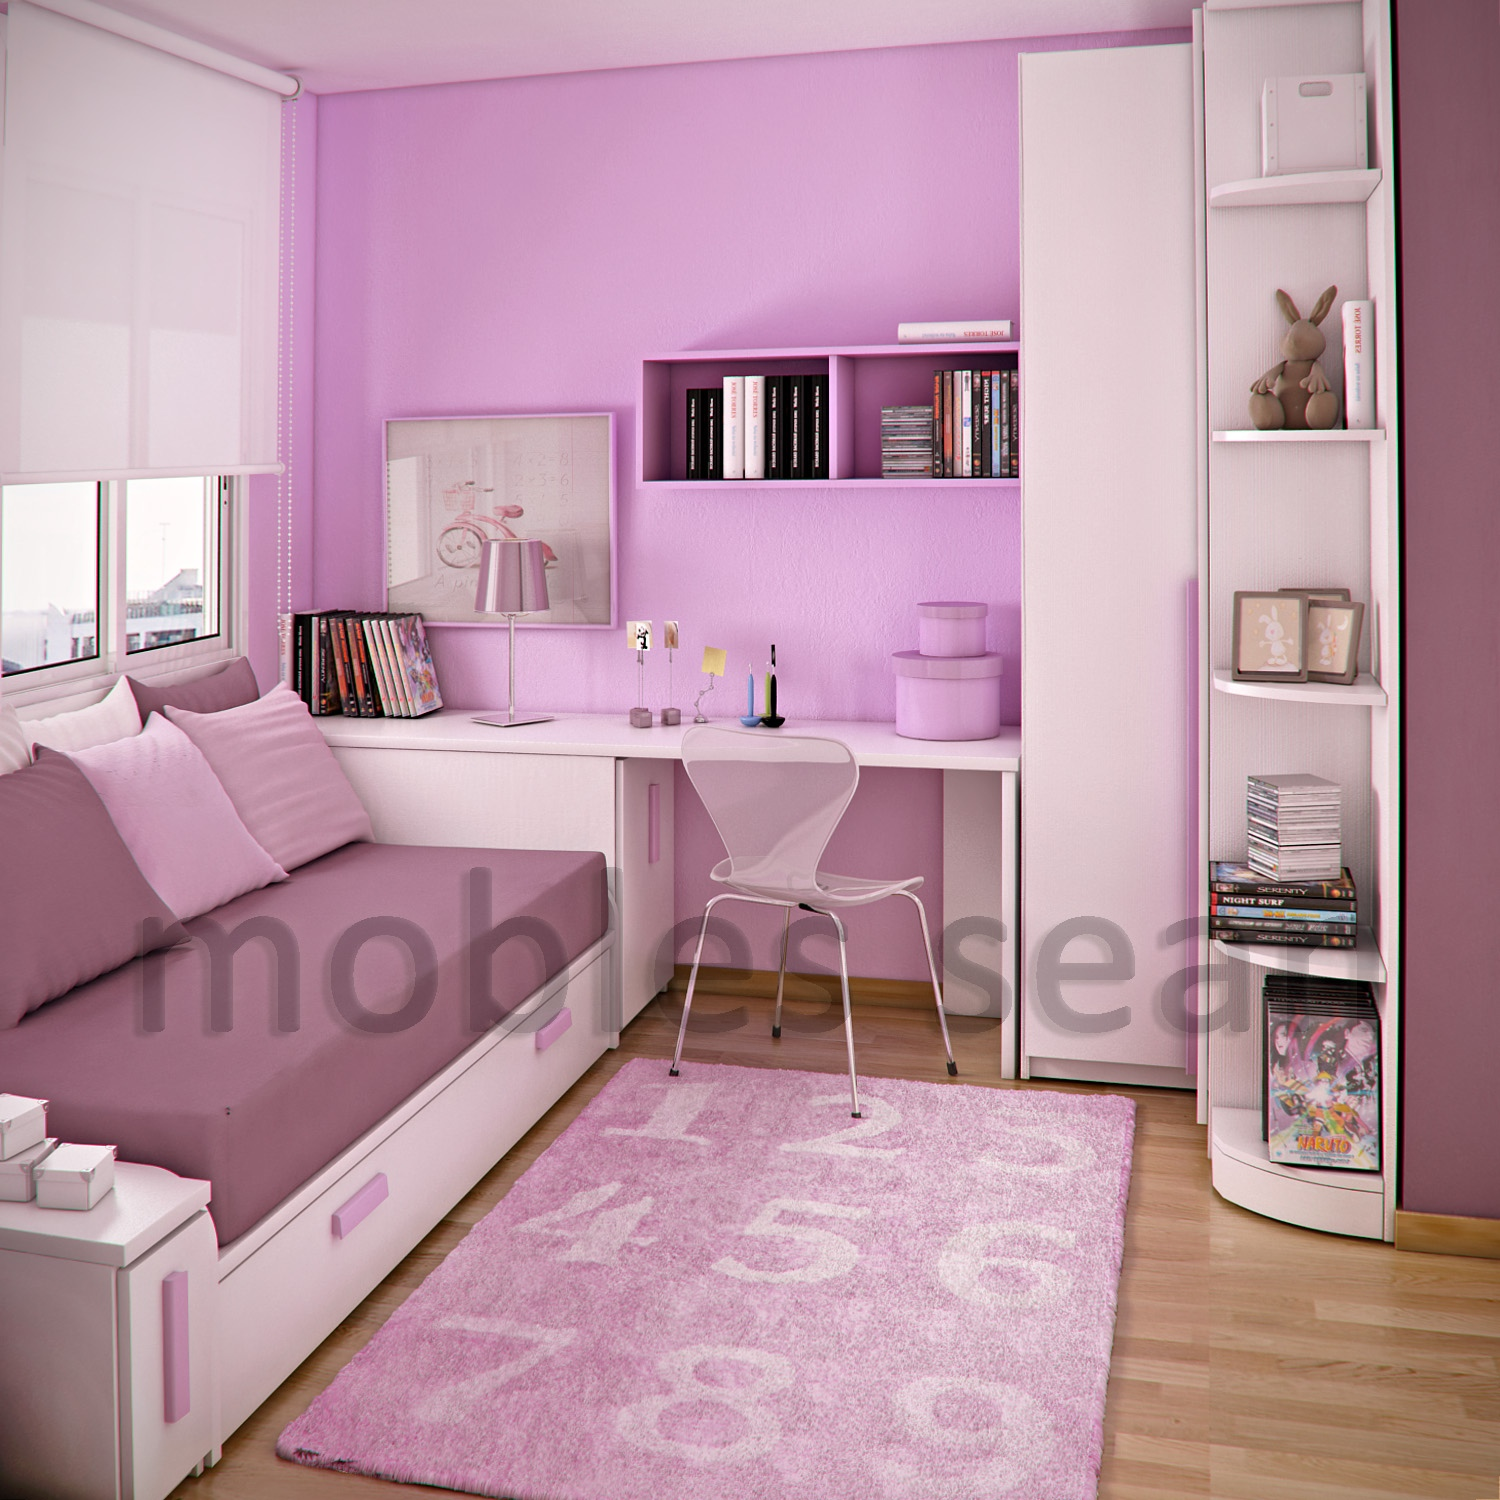 Space-Saving Designs for Small Kids Rooms on Girls Bedroom Ideas For Very Small Rooms  id=23357